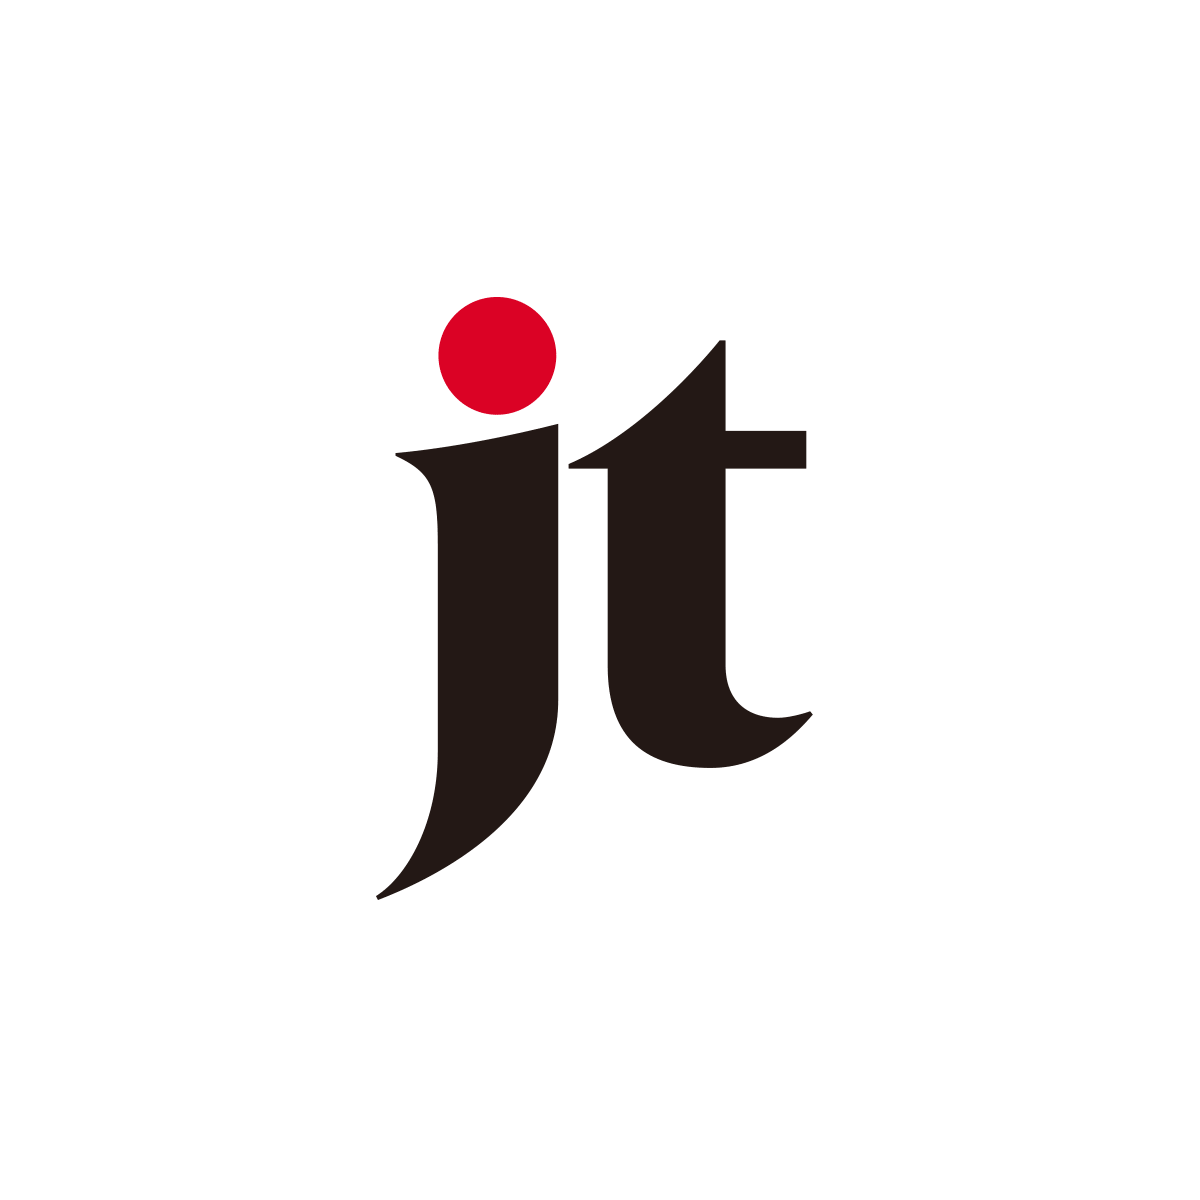 Clipart national news today online image library The Japan Times - News on Japan, Business News, Opinion, Sports ... image library